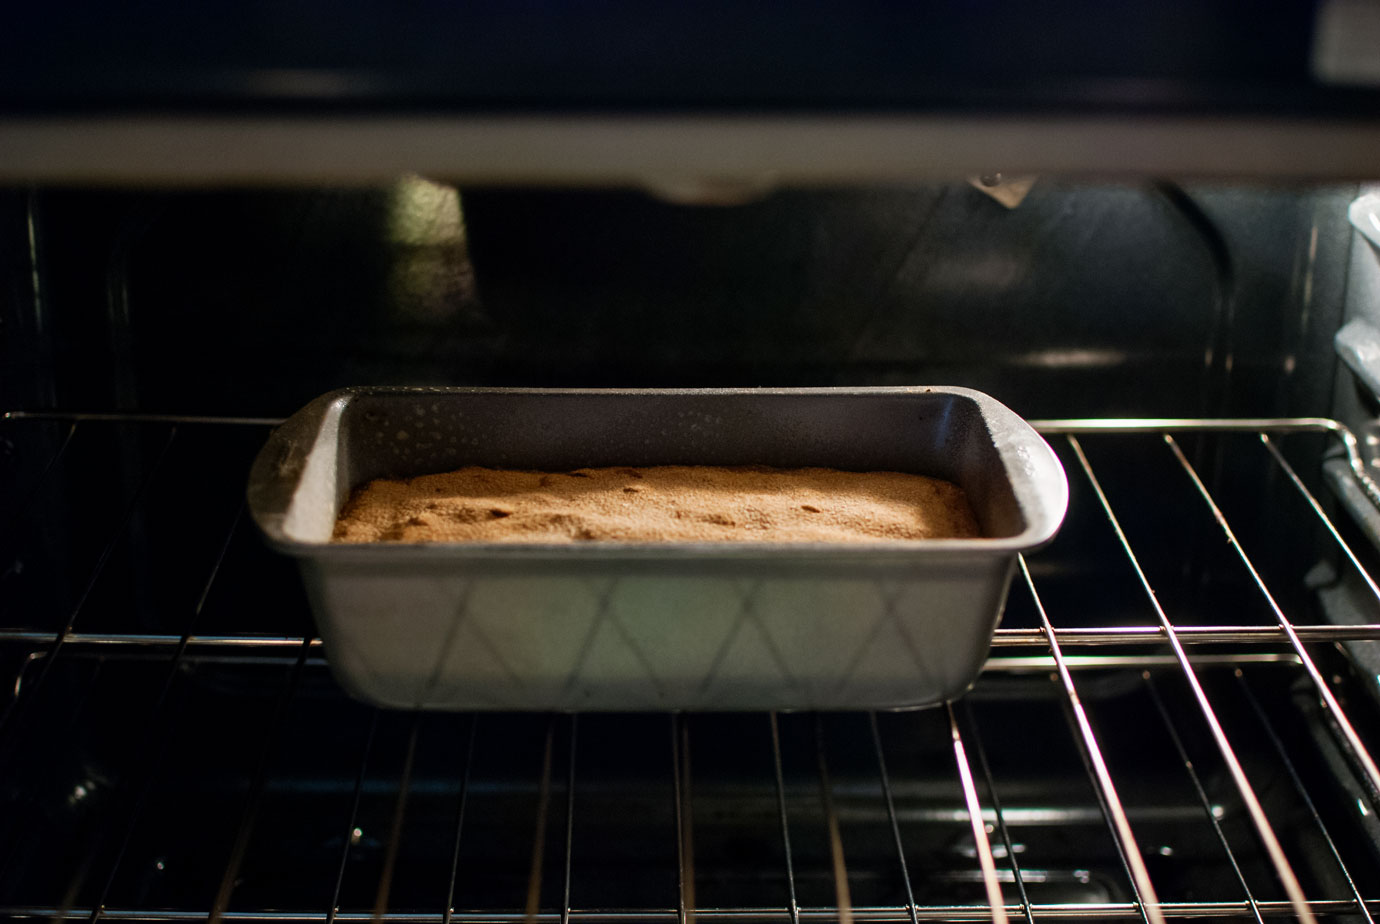 Bake The Banana Bread With Chocolate Chips At 350 For Around One Hour